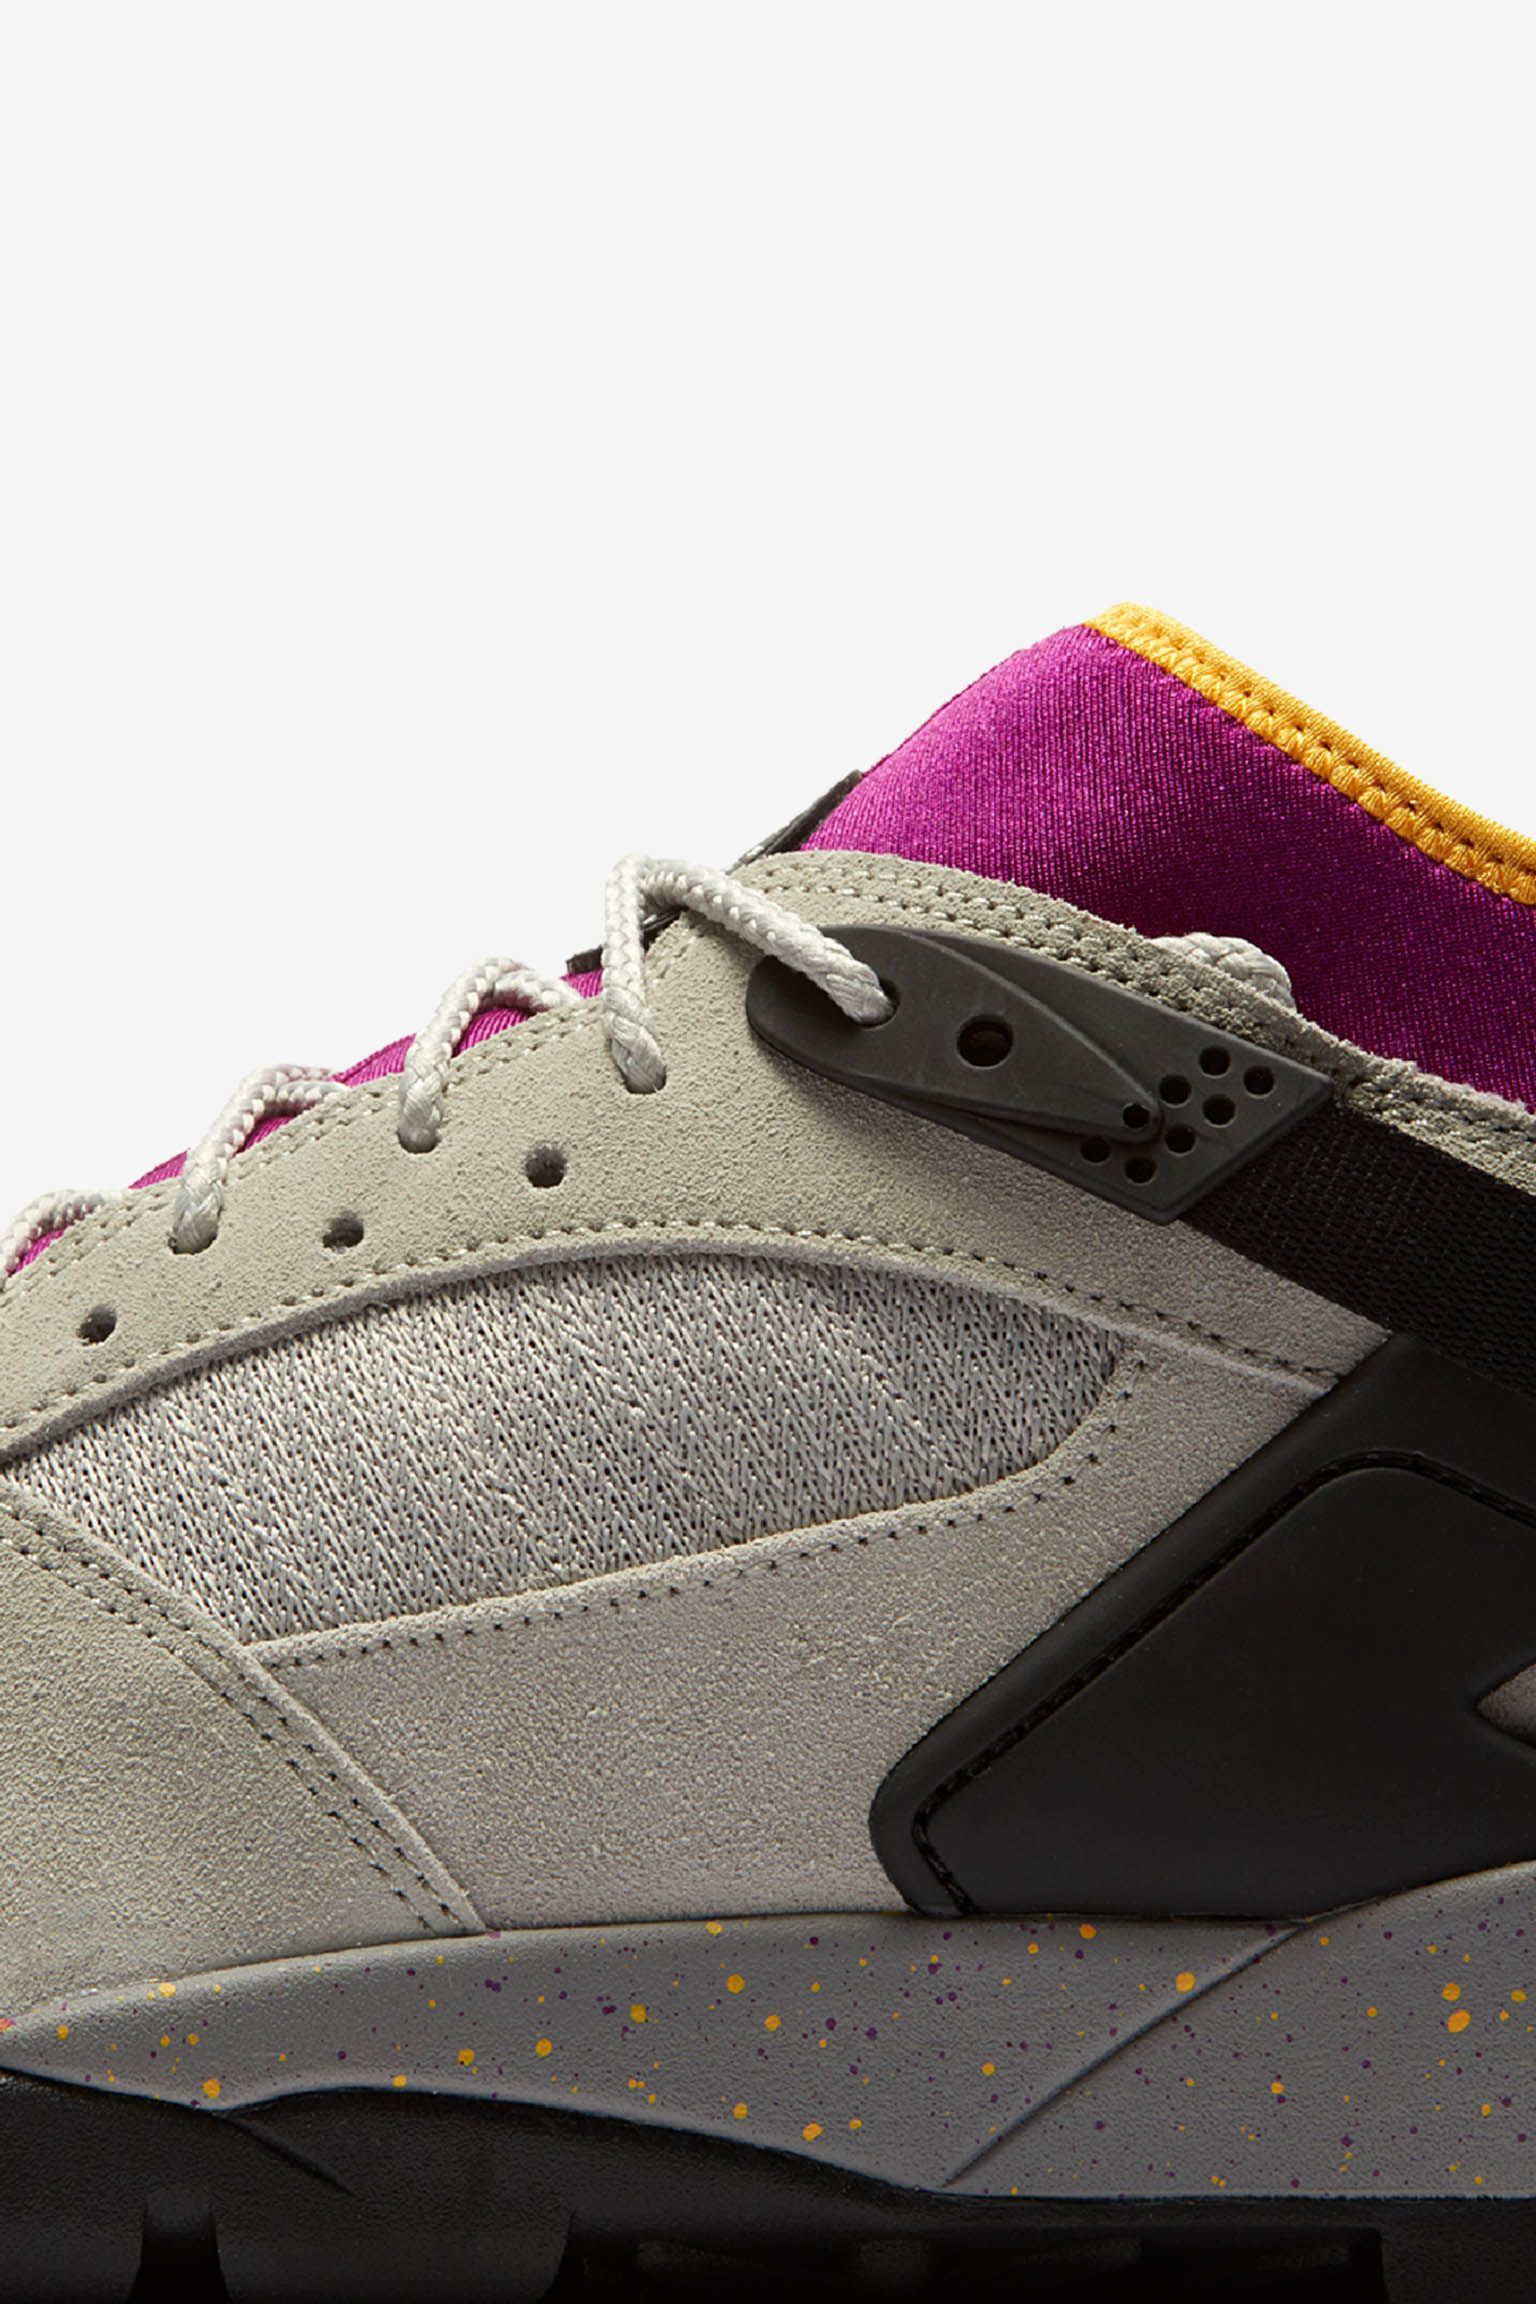 Nike Air Revaderchi 'Granite & Red Plum' Release Date